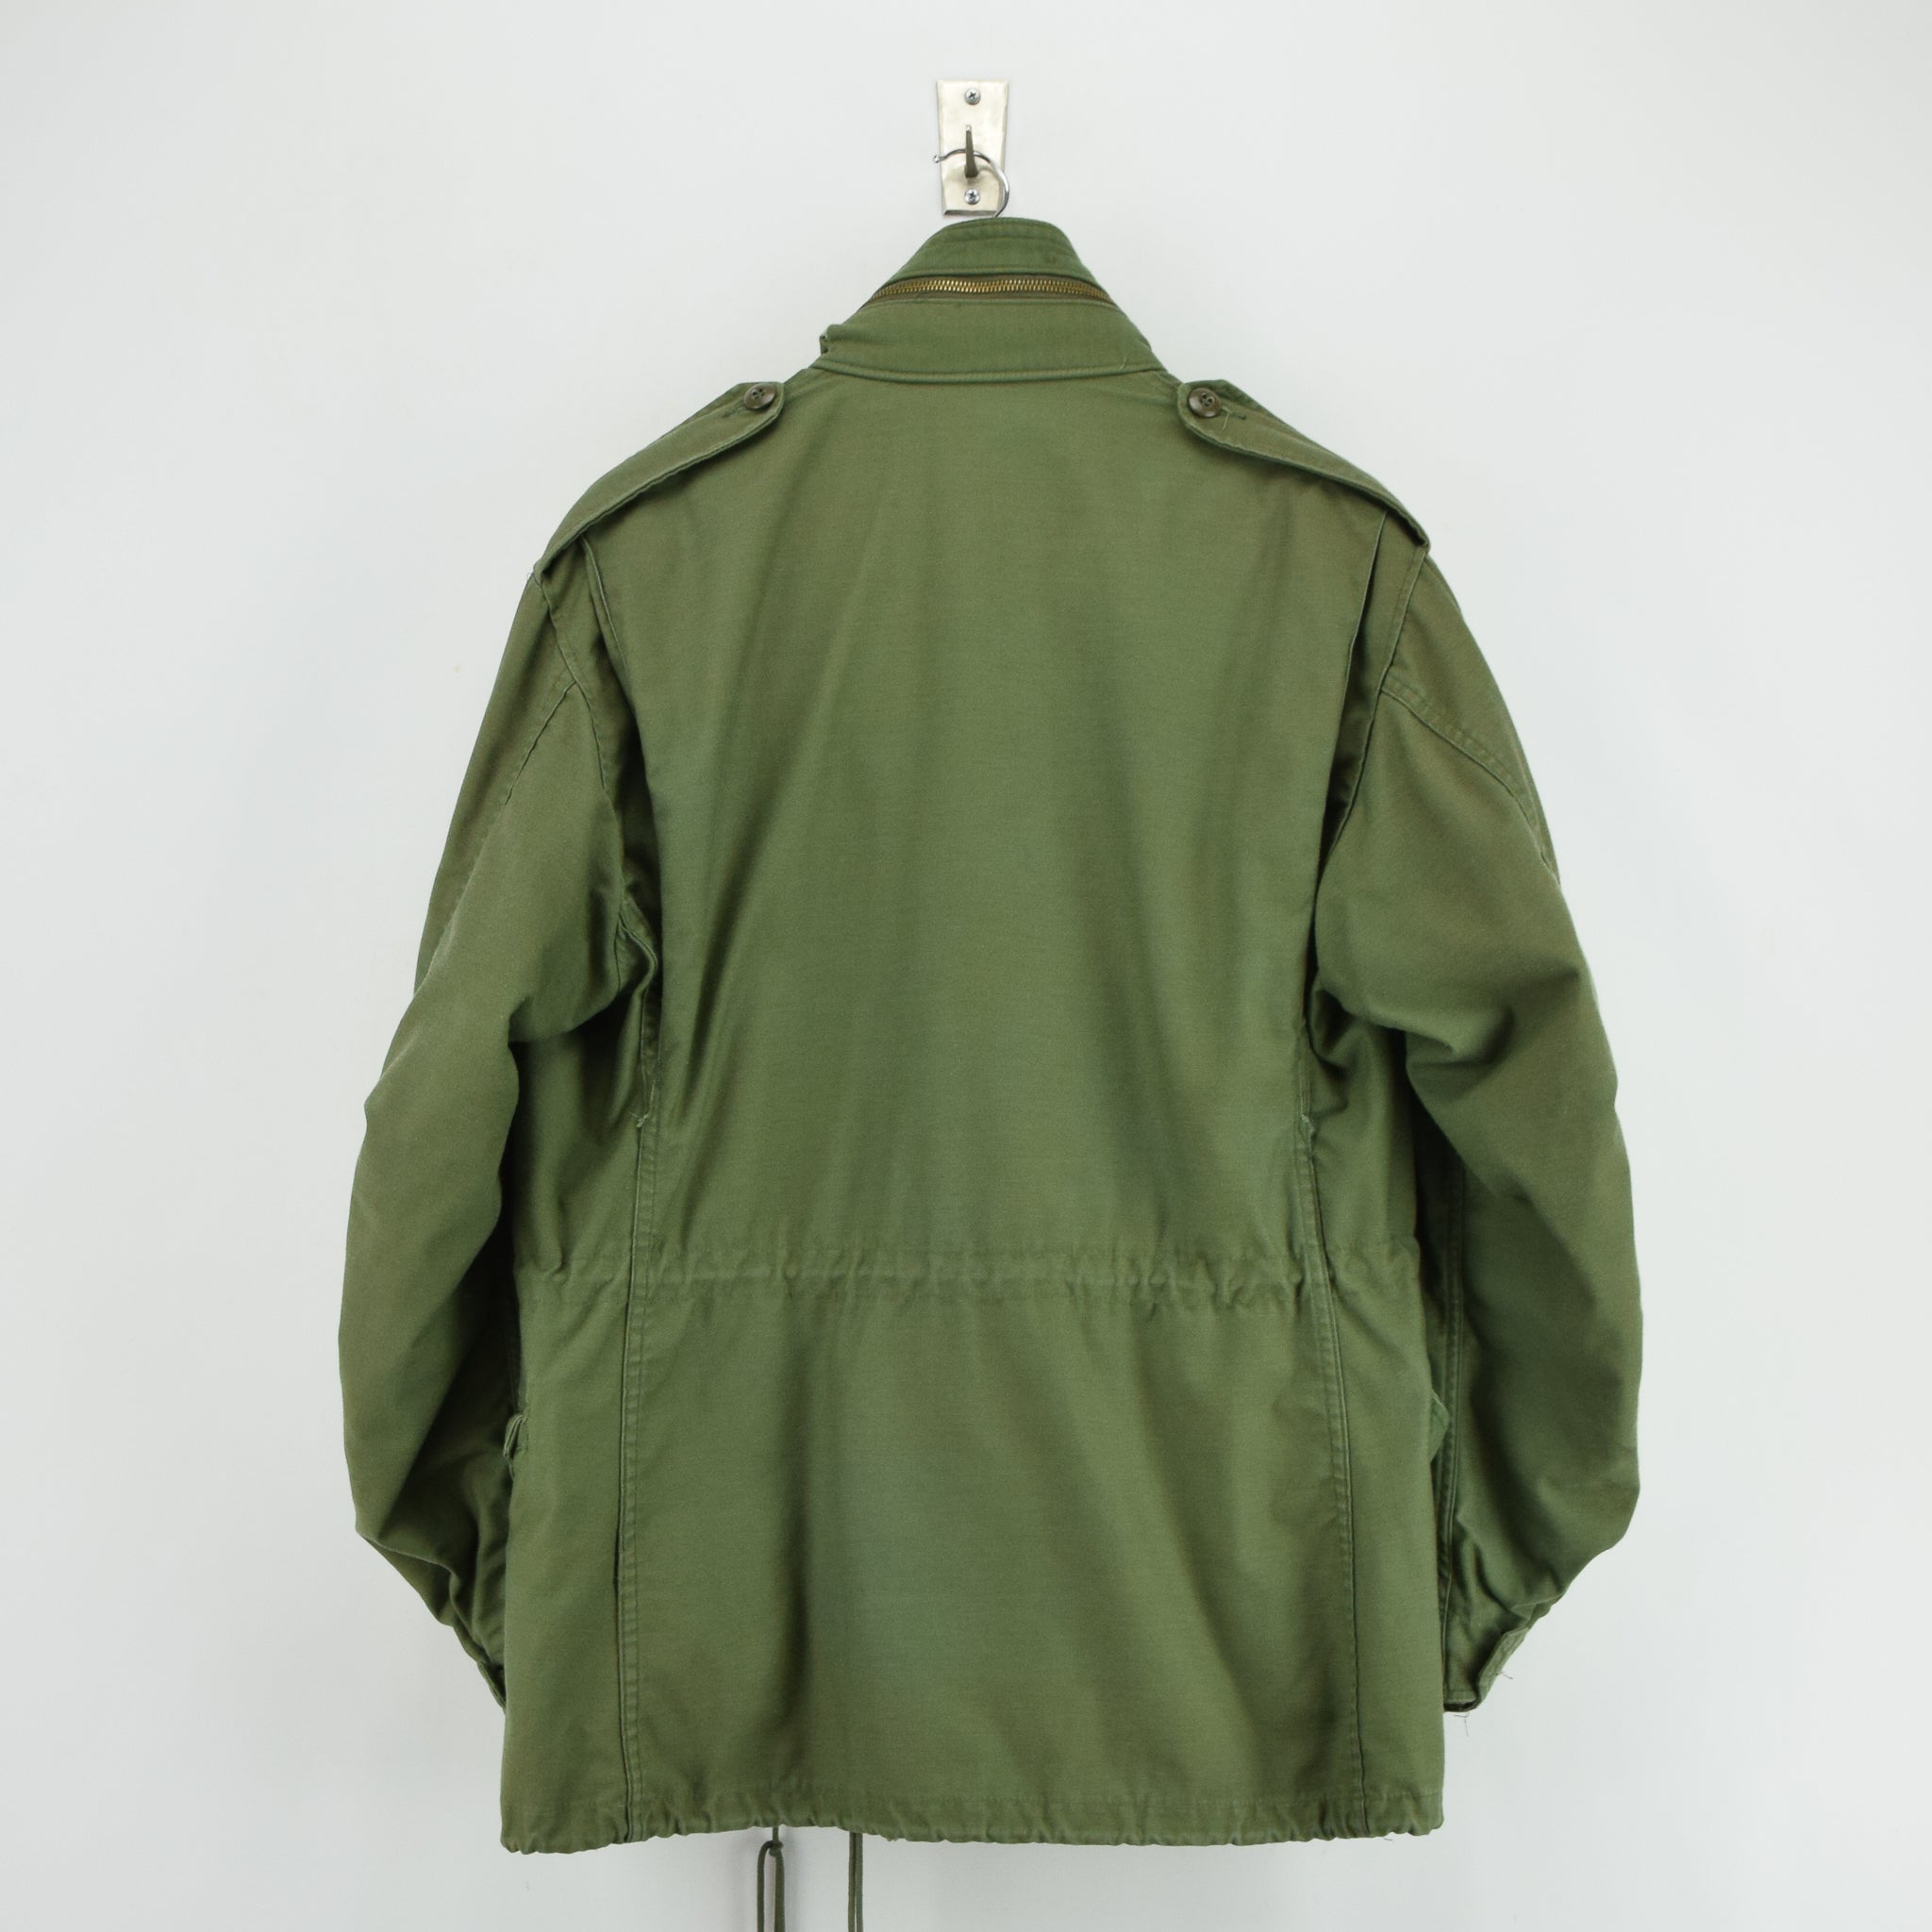 Vintage 80s M-65 Man's Cold Weather Field Military Army Jacket M Reg back